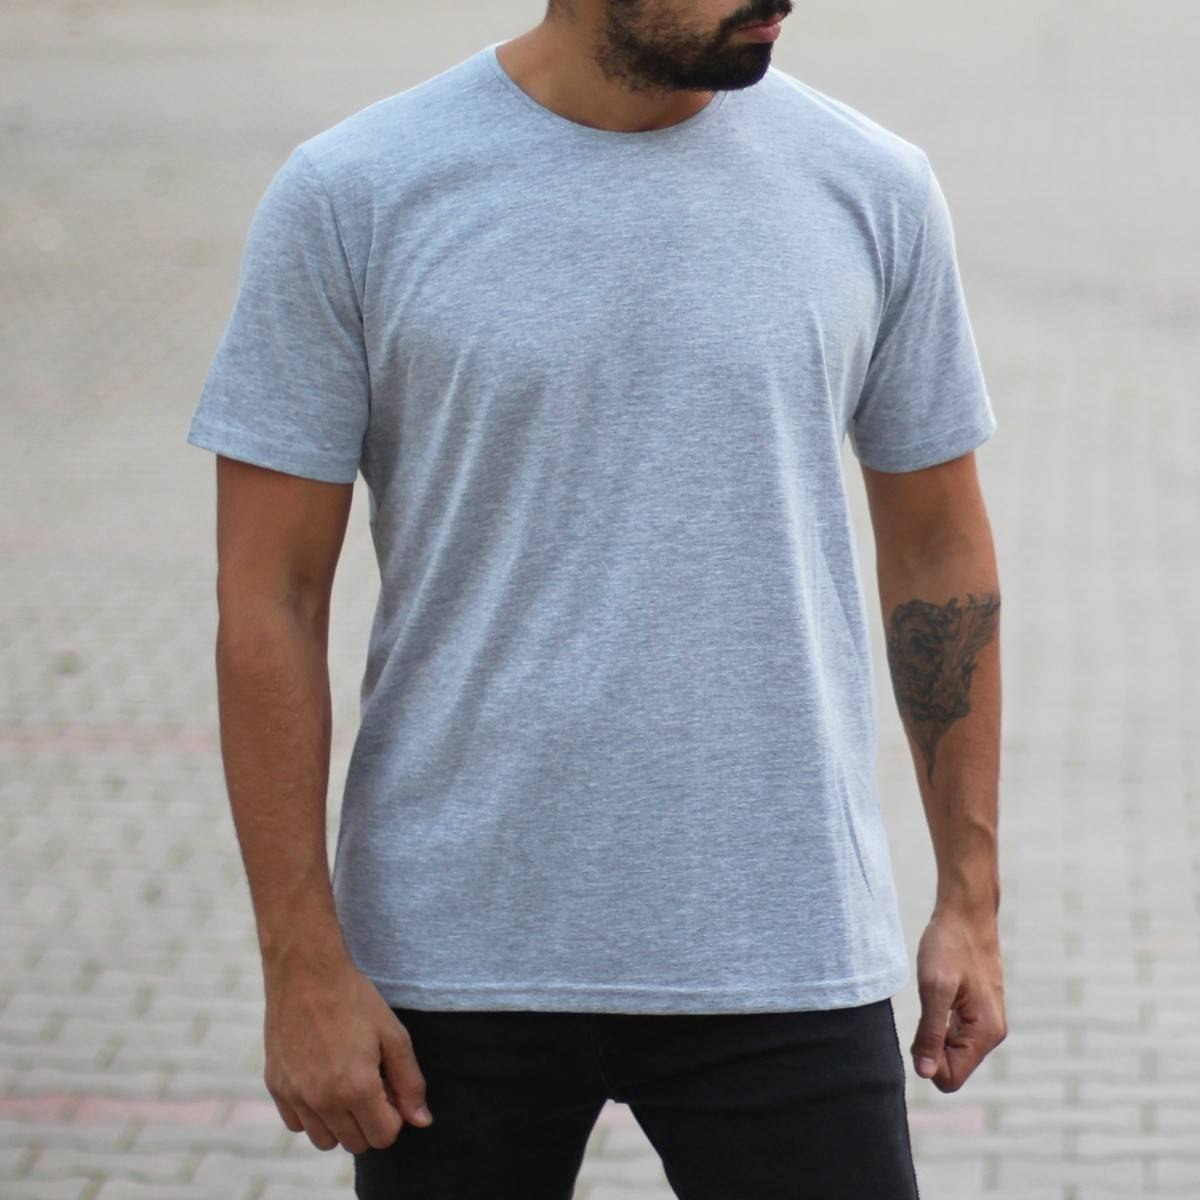 Men's Oversized Basic T-Shirt Gray